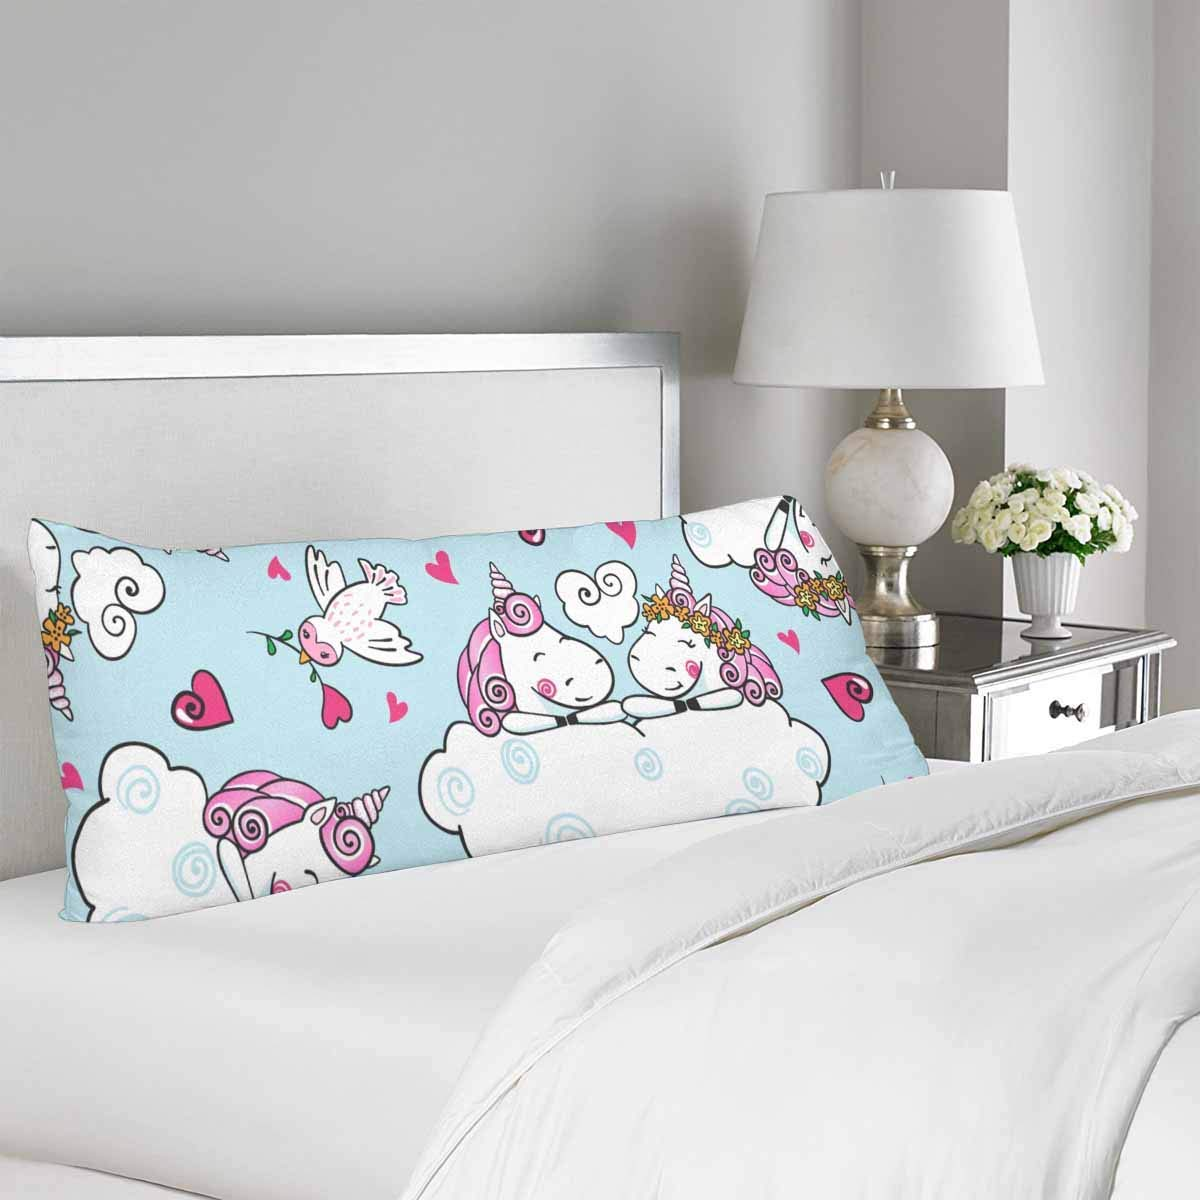 GCKG Cute Unicorn Falling in Love Heart Cartoon Style Pillow Covers Pillowcase 20x60 inches, Body Pillow Case Protector - image 1 de 2